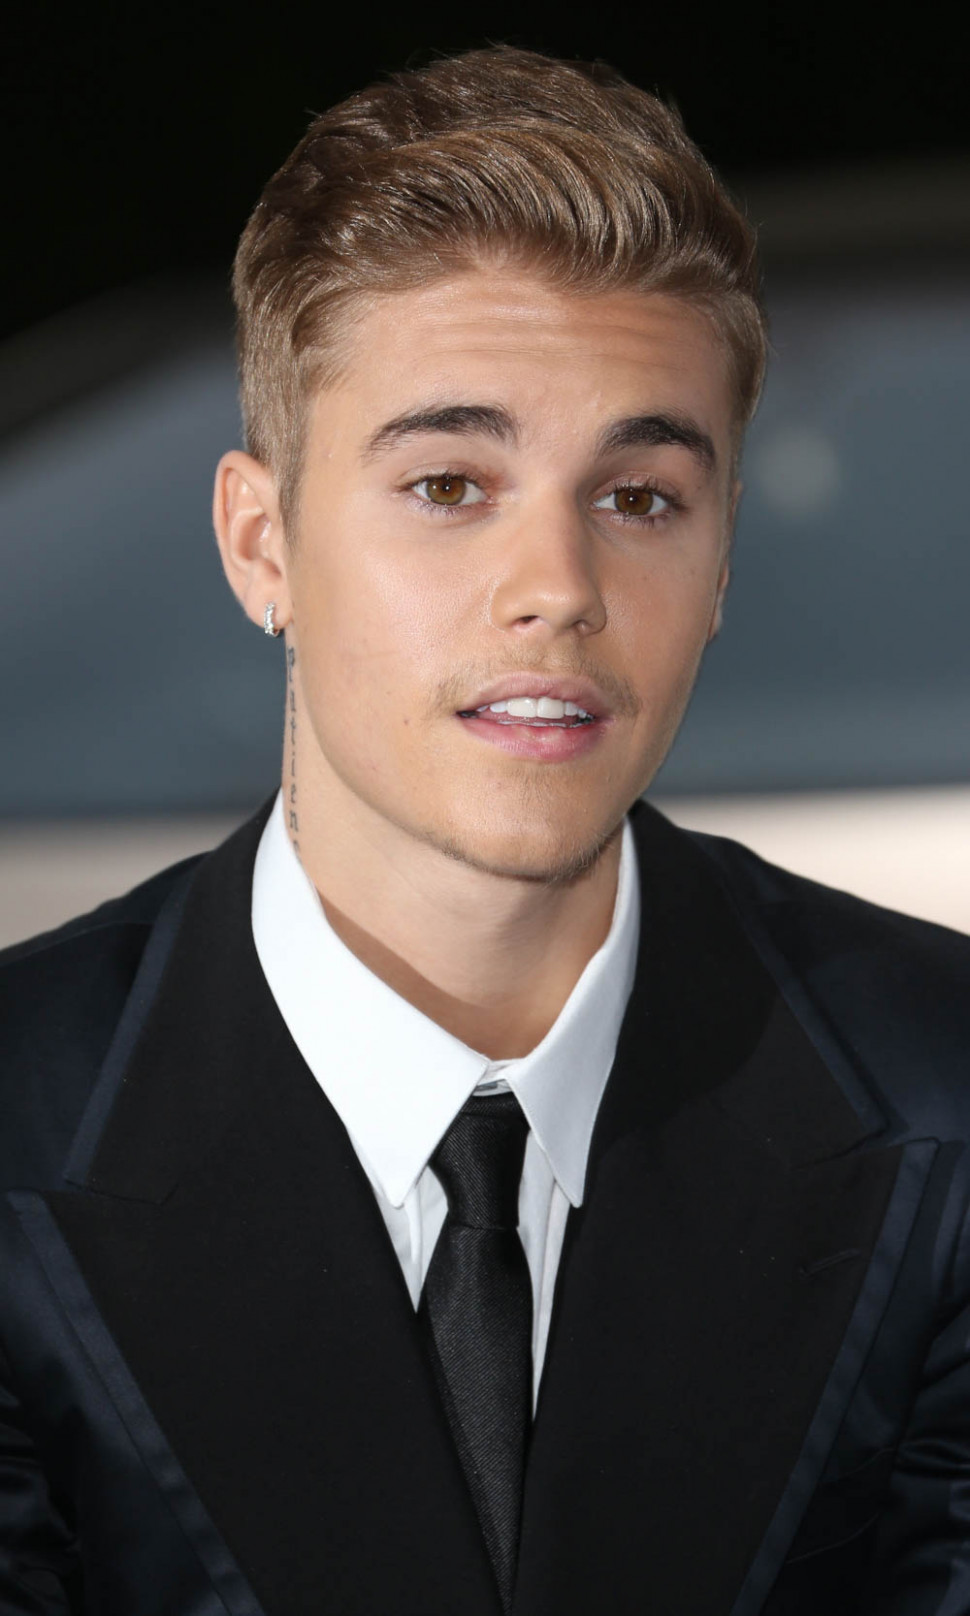 Best Justin Bieber Haircuts & Hairstyles